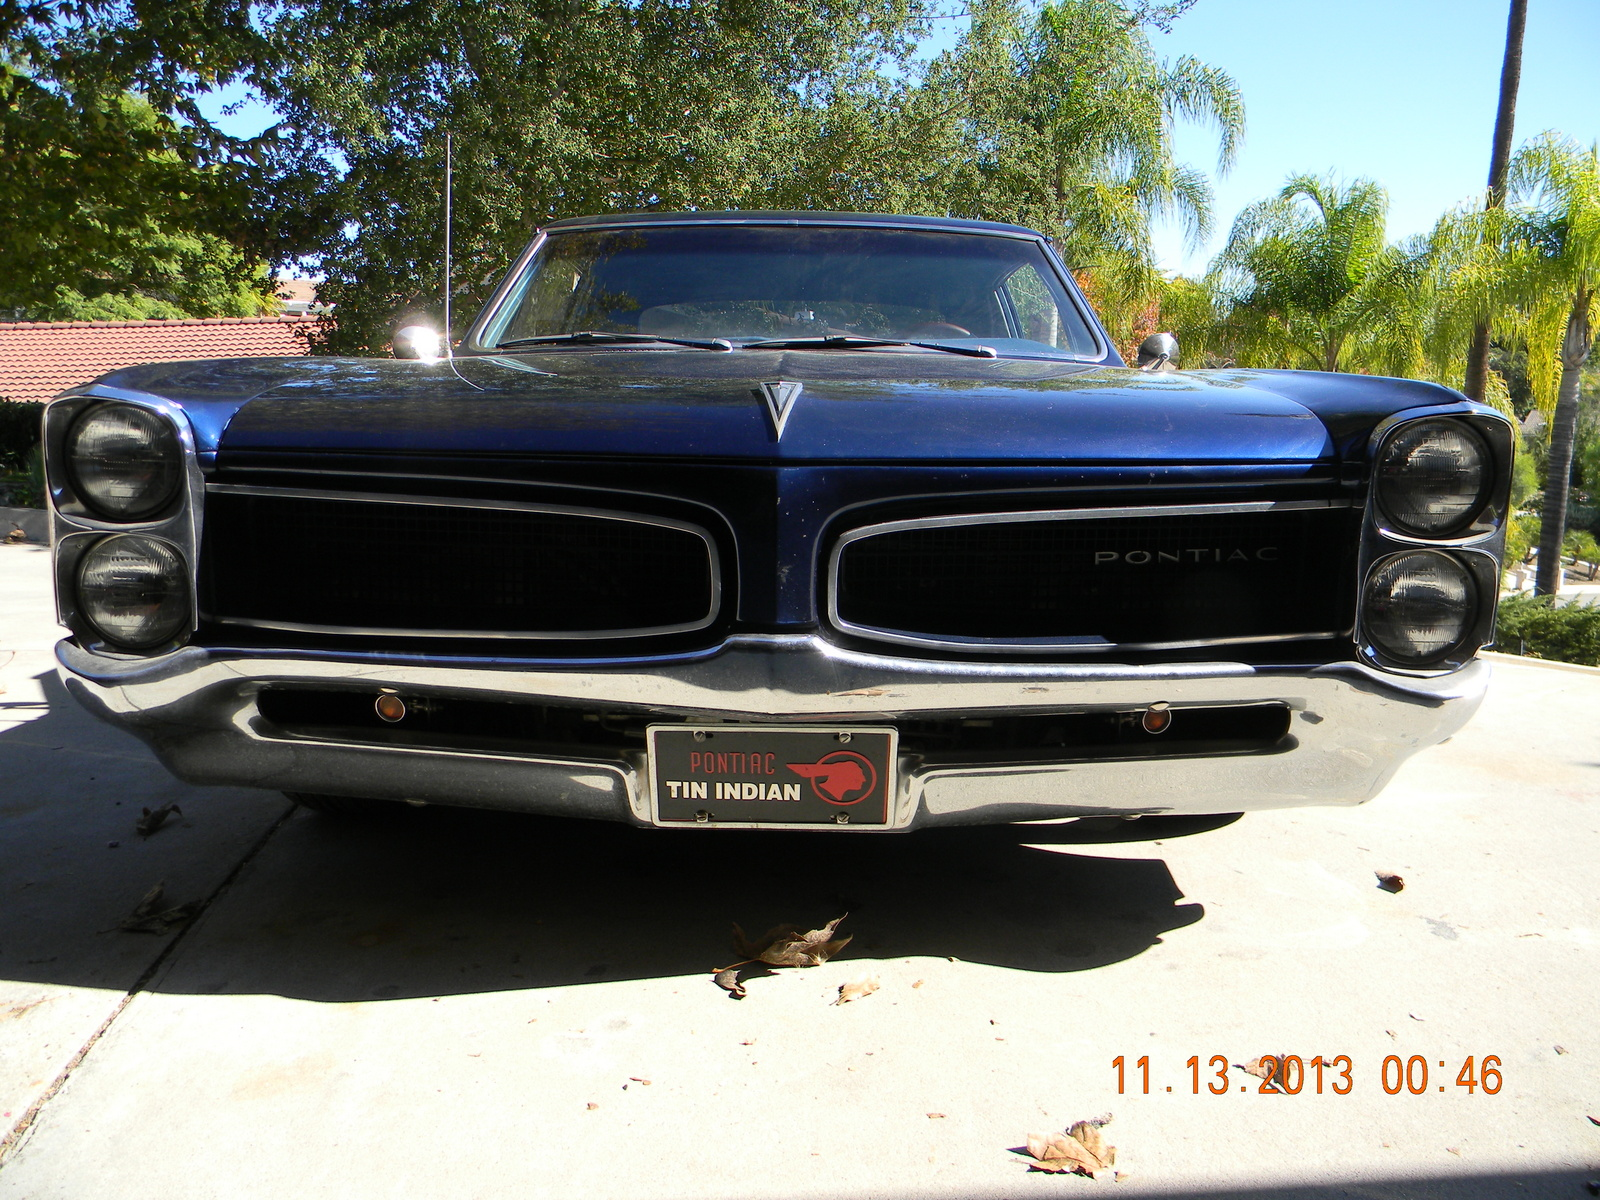 65 Chevelle SS moreover 1967 Pontiac Grand Prix Convertible besides Chevrolet Camaro SS further 1963 Chevy Stepside Pick Up additionally Fuel Tank Sending Unit Diagram. on 1964 dodge dart wiring diagram